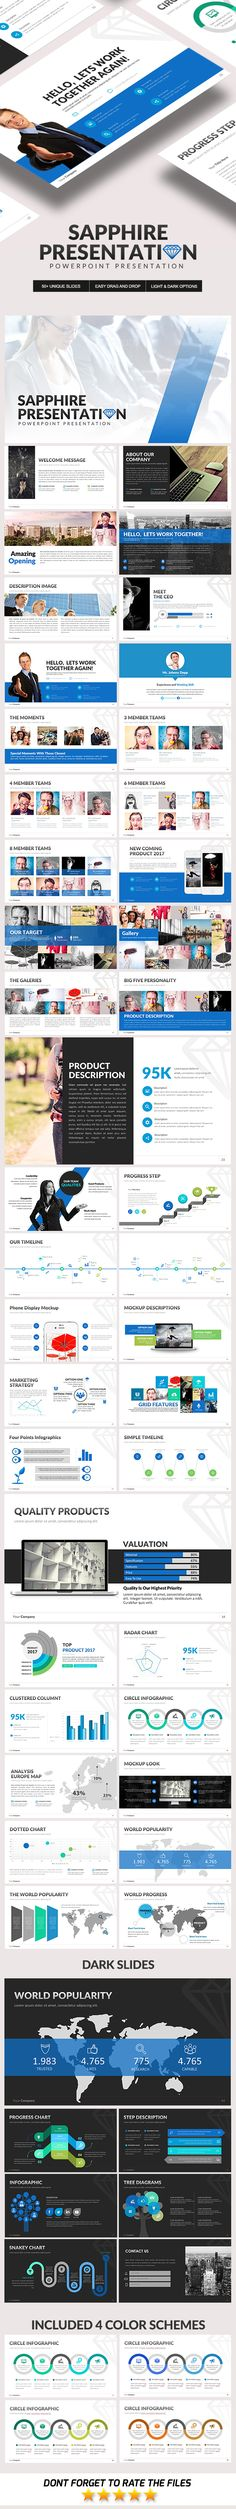 Sapphire Powerpoint Template - Business #PowerPoint #Templates Download here:  https://graphicriver.net/item/sapphire-powerpoint-template/19449829?ref=alena994